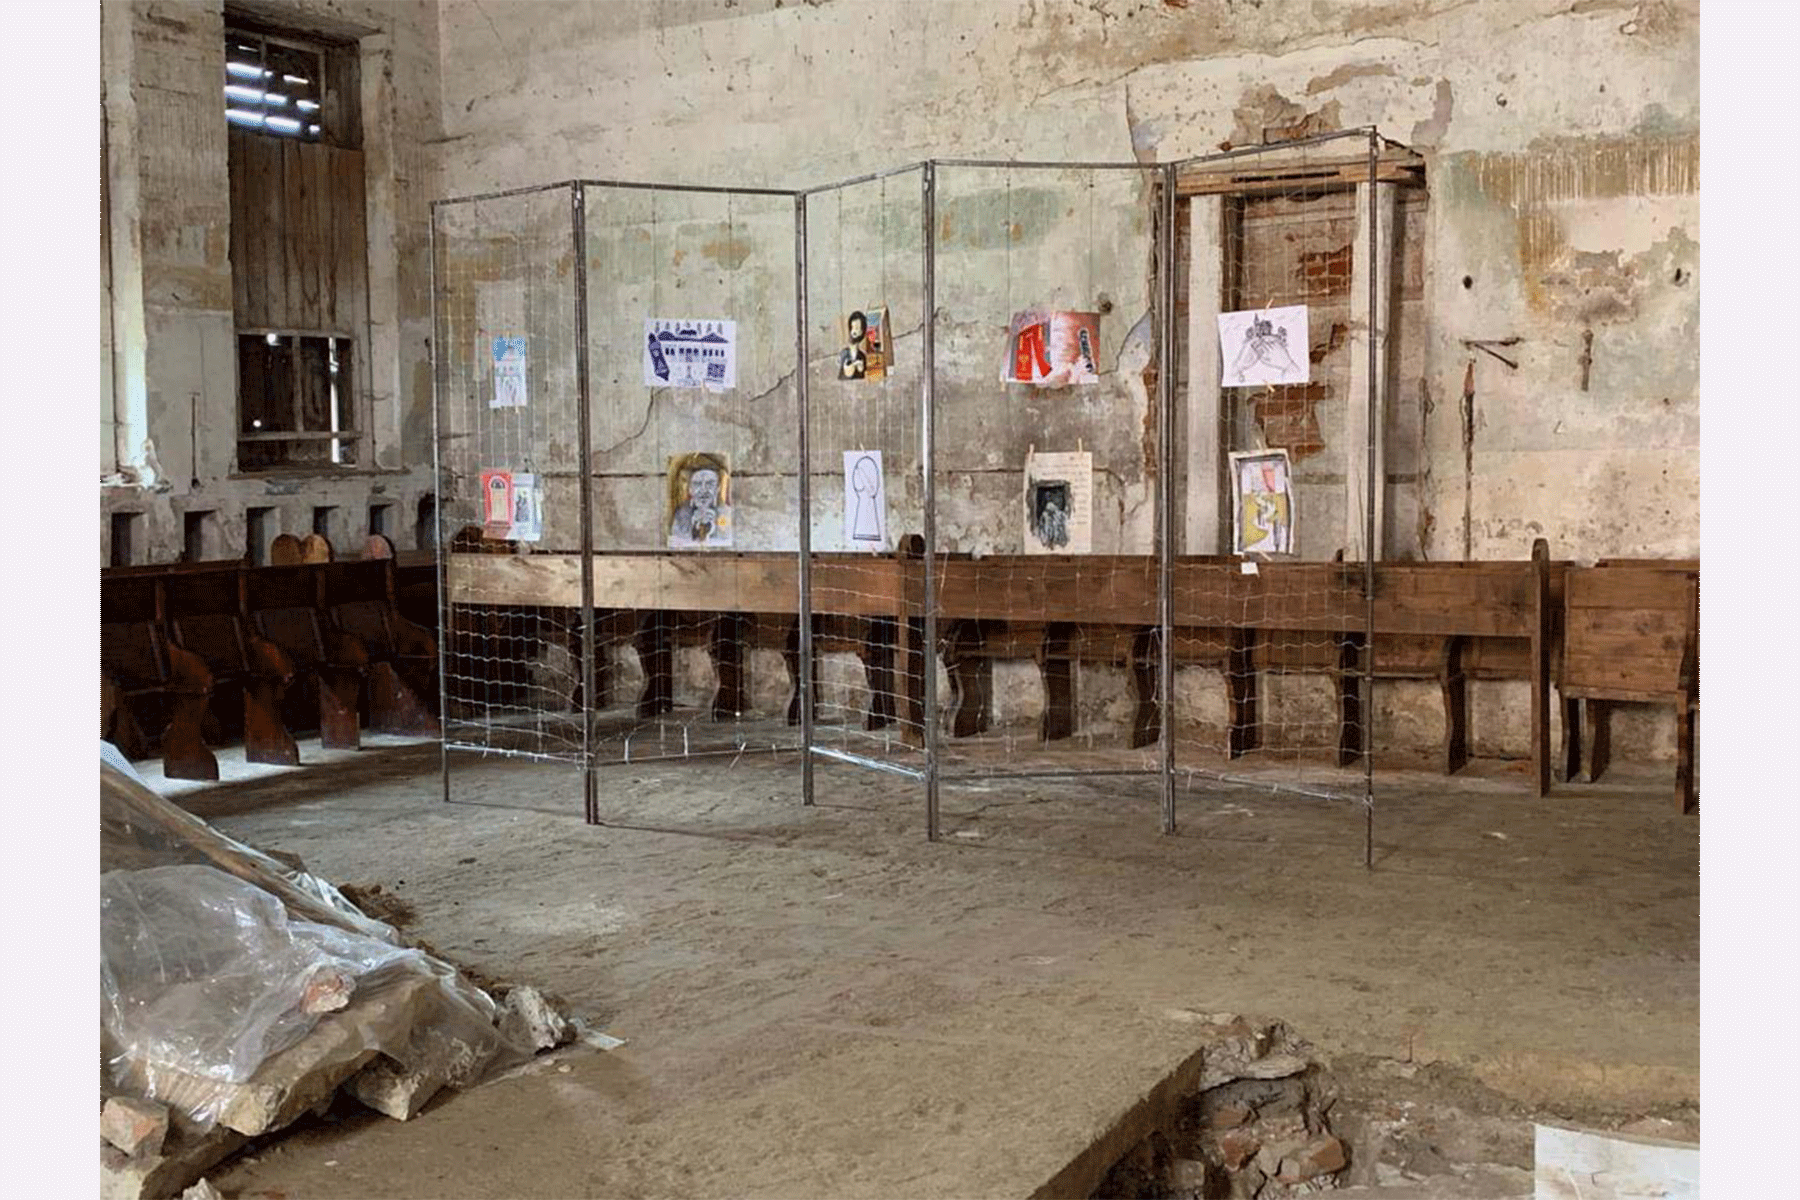 Display of the Artwork Contest submissions inside the Old Synagogue